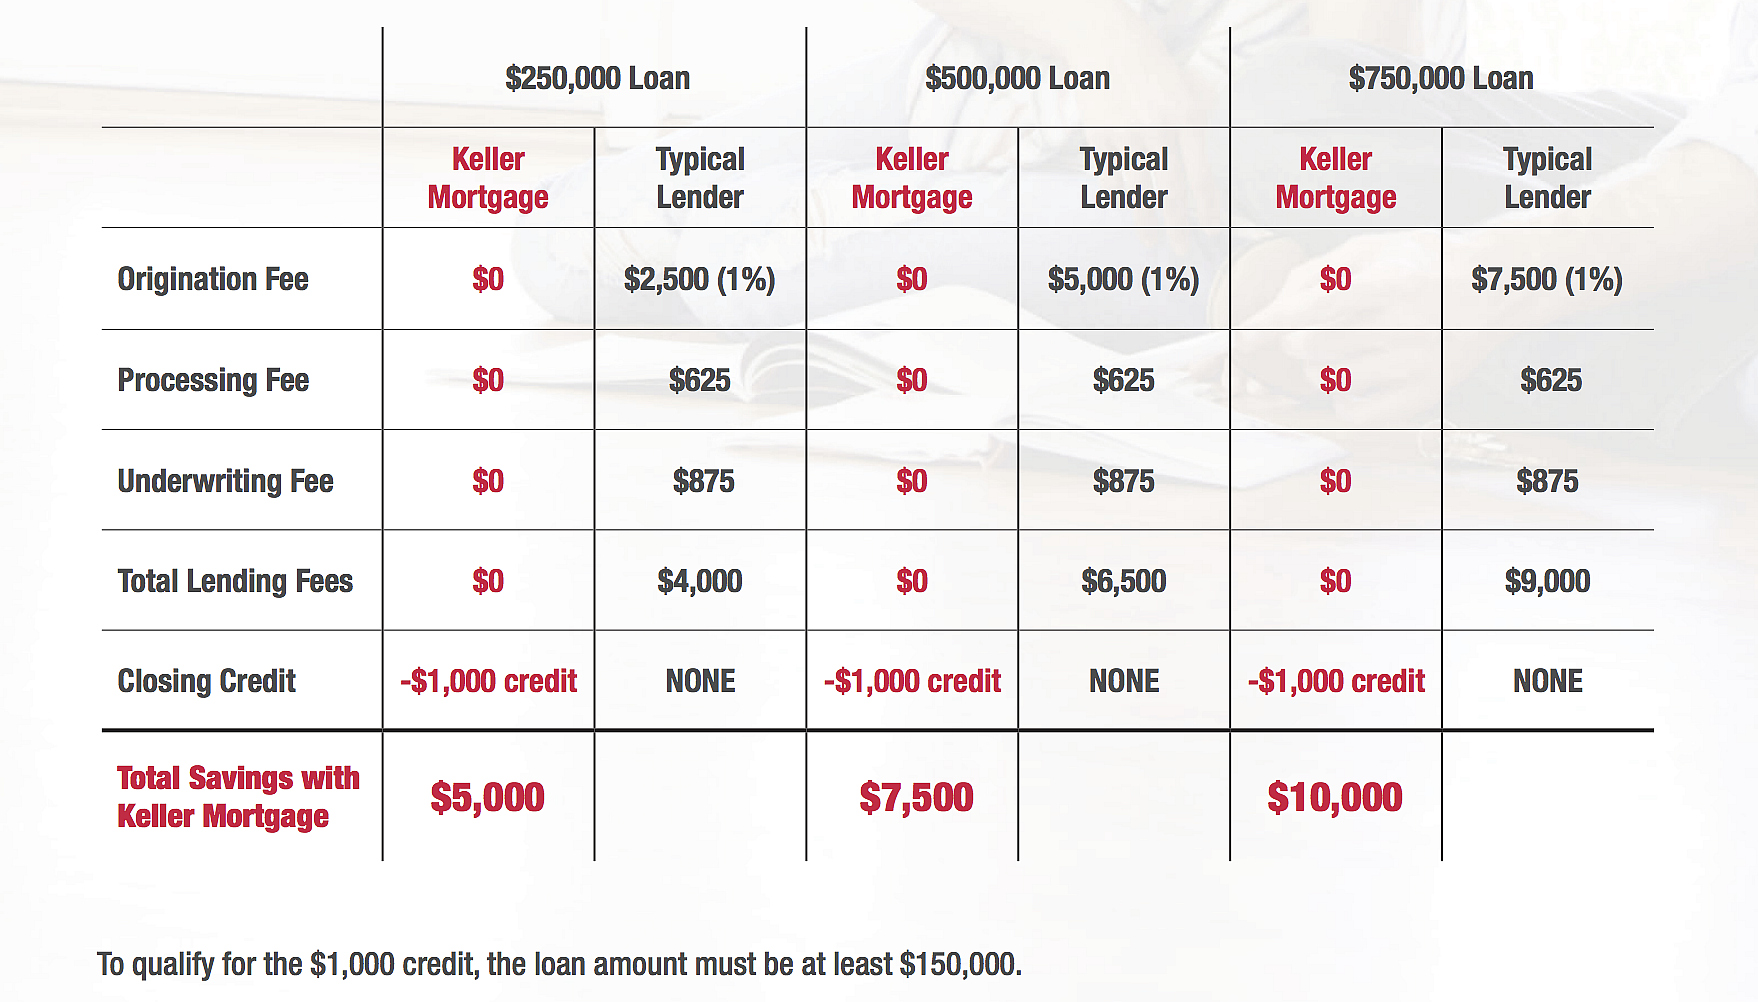 Save thousands with Keller Mortgage